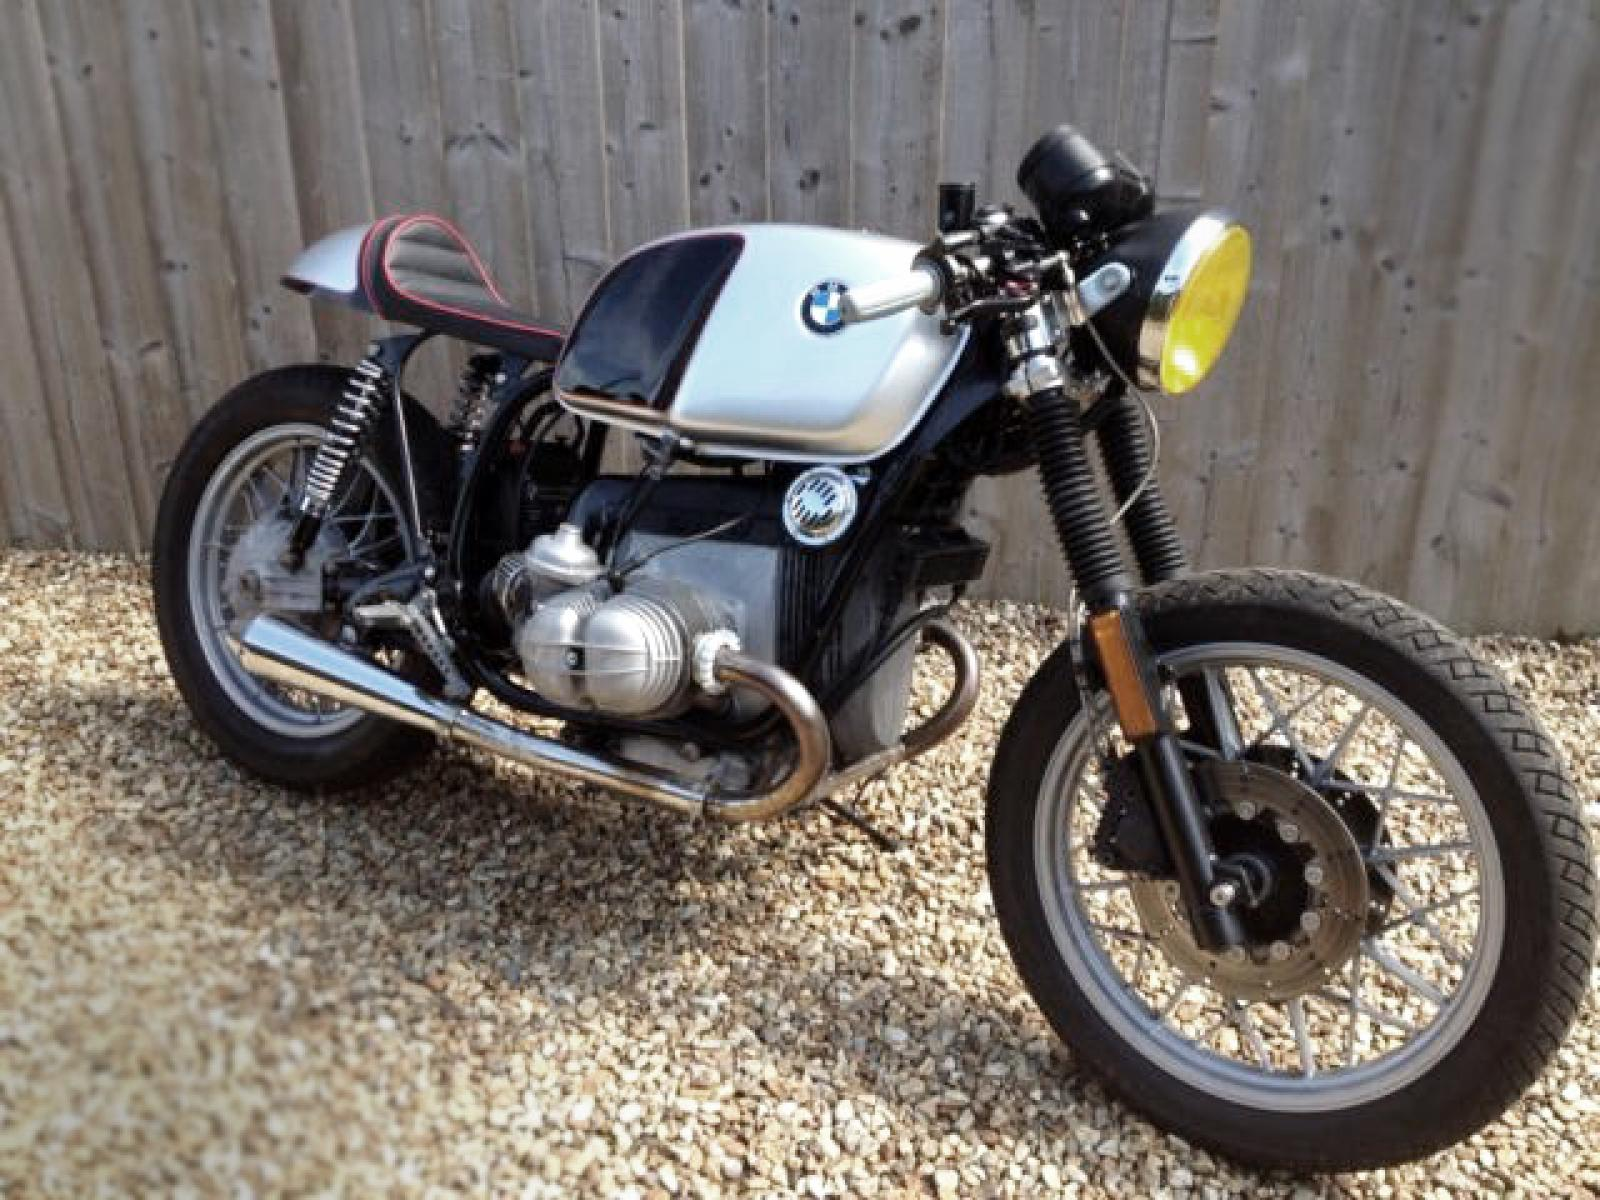 1983 BMW R100 pics specs and information  onlymotorbikescom